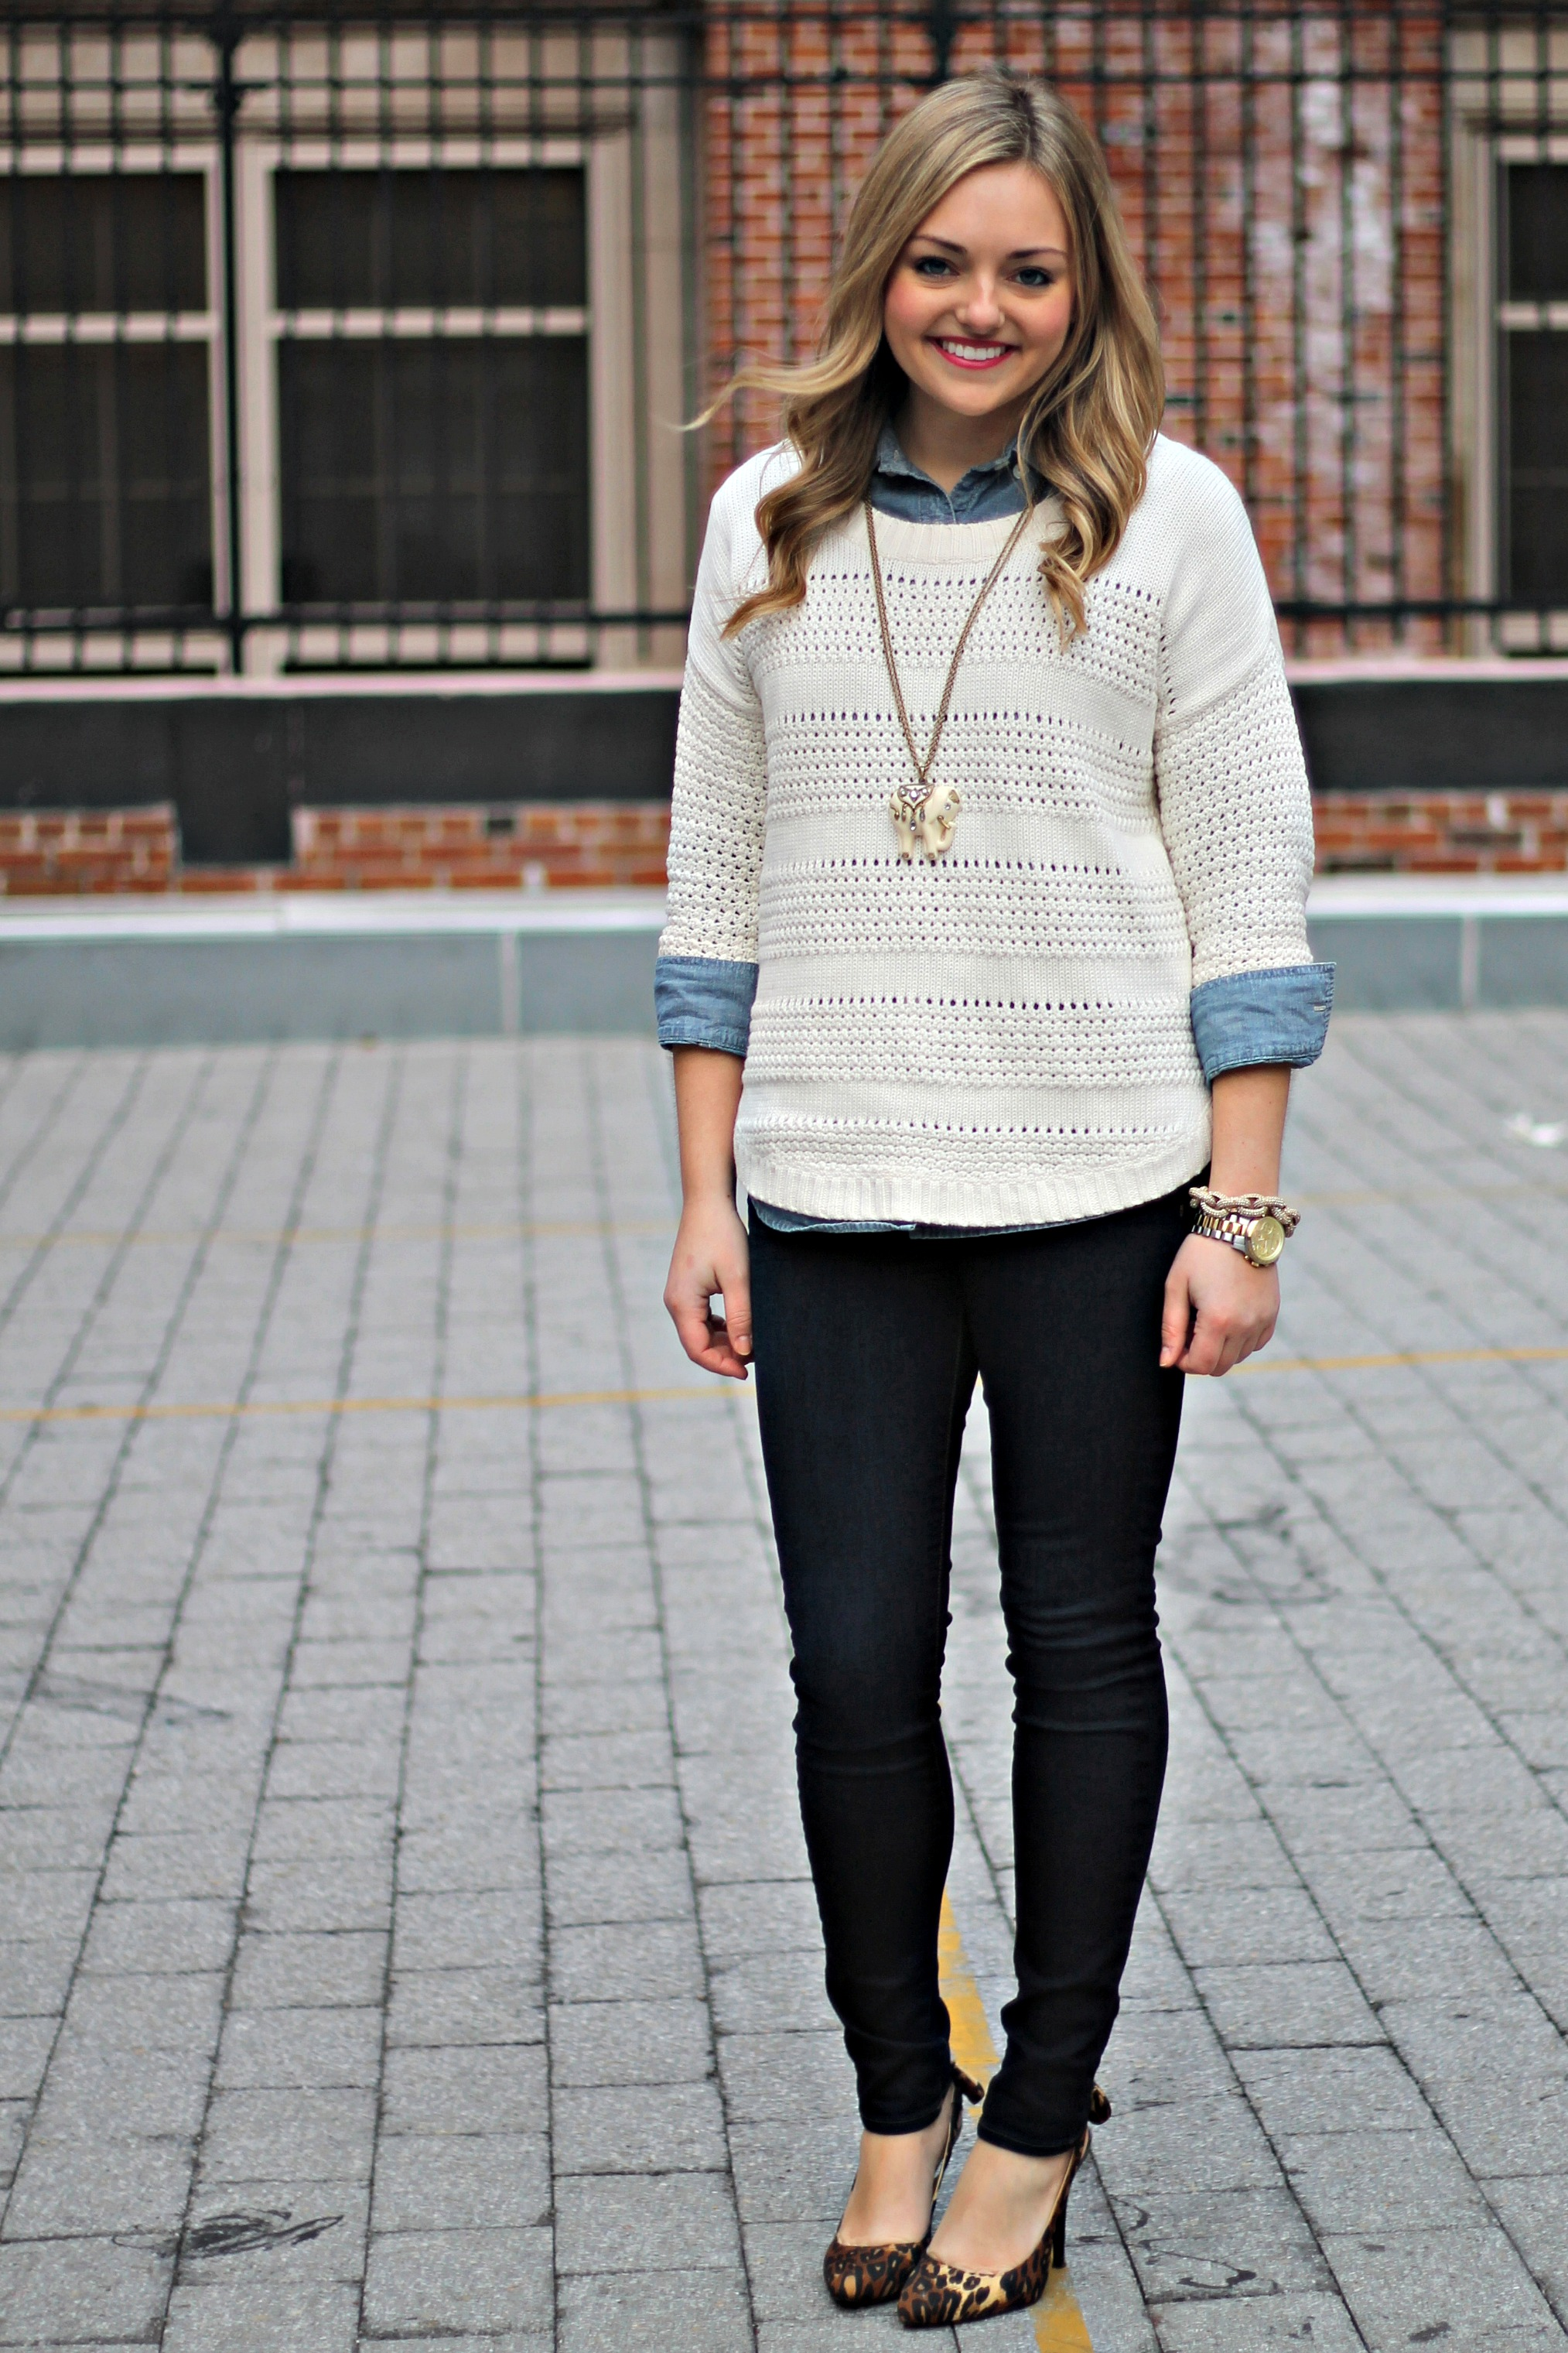 Sweater boredom halt always ladies for Jeans and shirt women